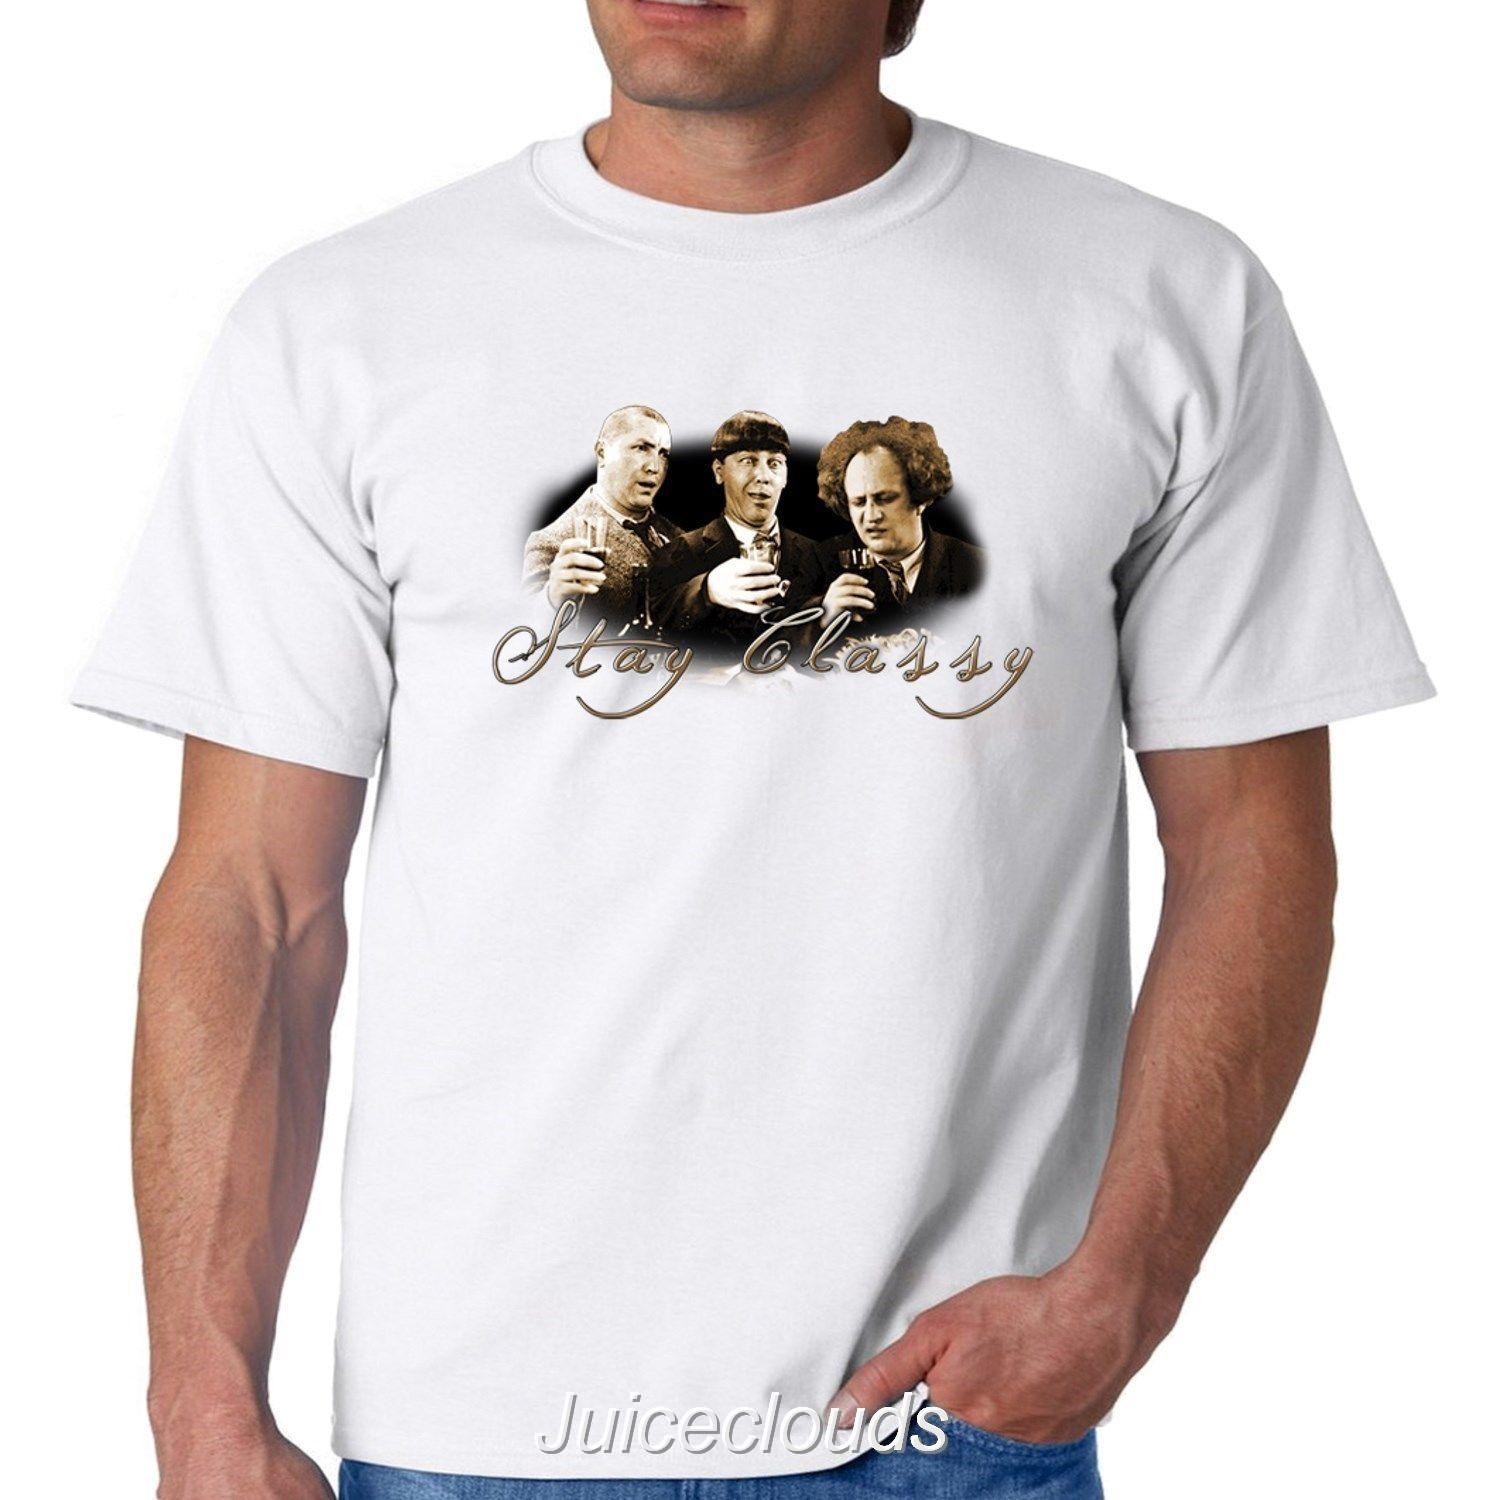 bfe6ea9d19 Funny Three Stooges Stay Classy Men'S T Shirt Larry Moe Curly Tee Shop T  Shirts Online T Shirt Shirt From Cheaptshirts48, $11.58| DHgate.Com